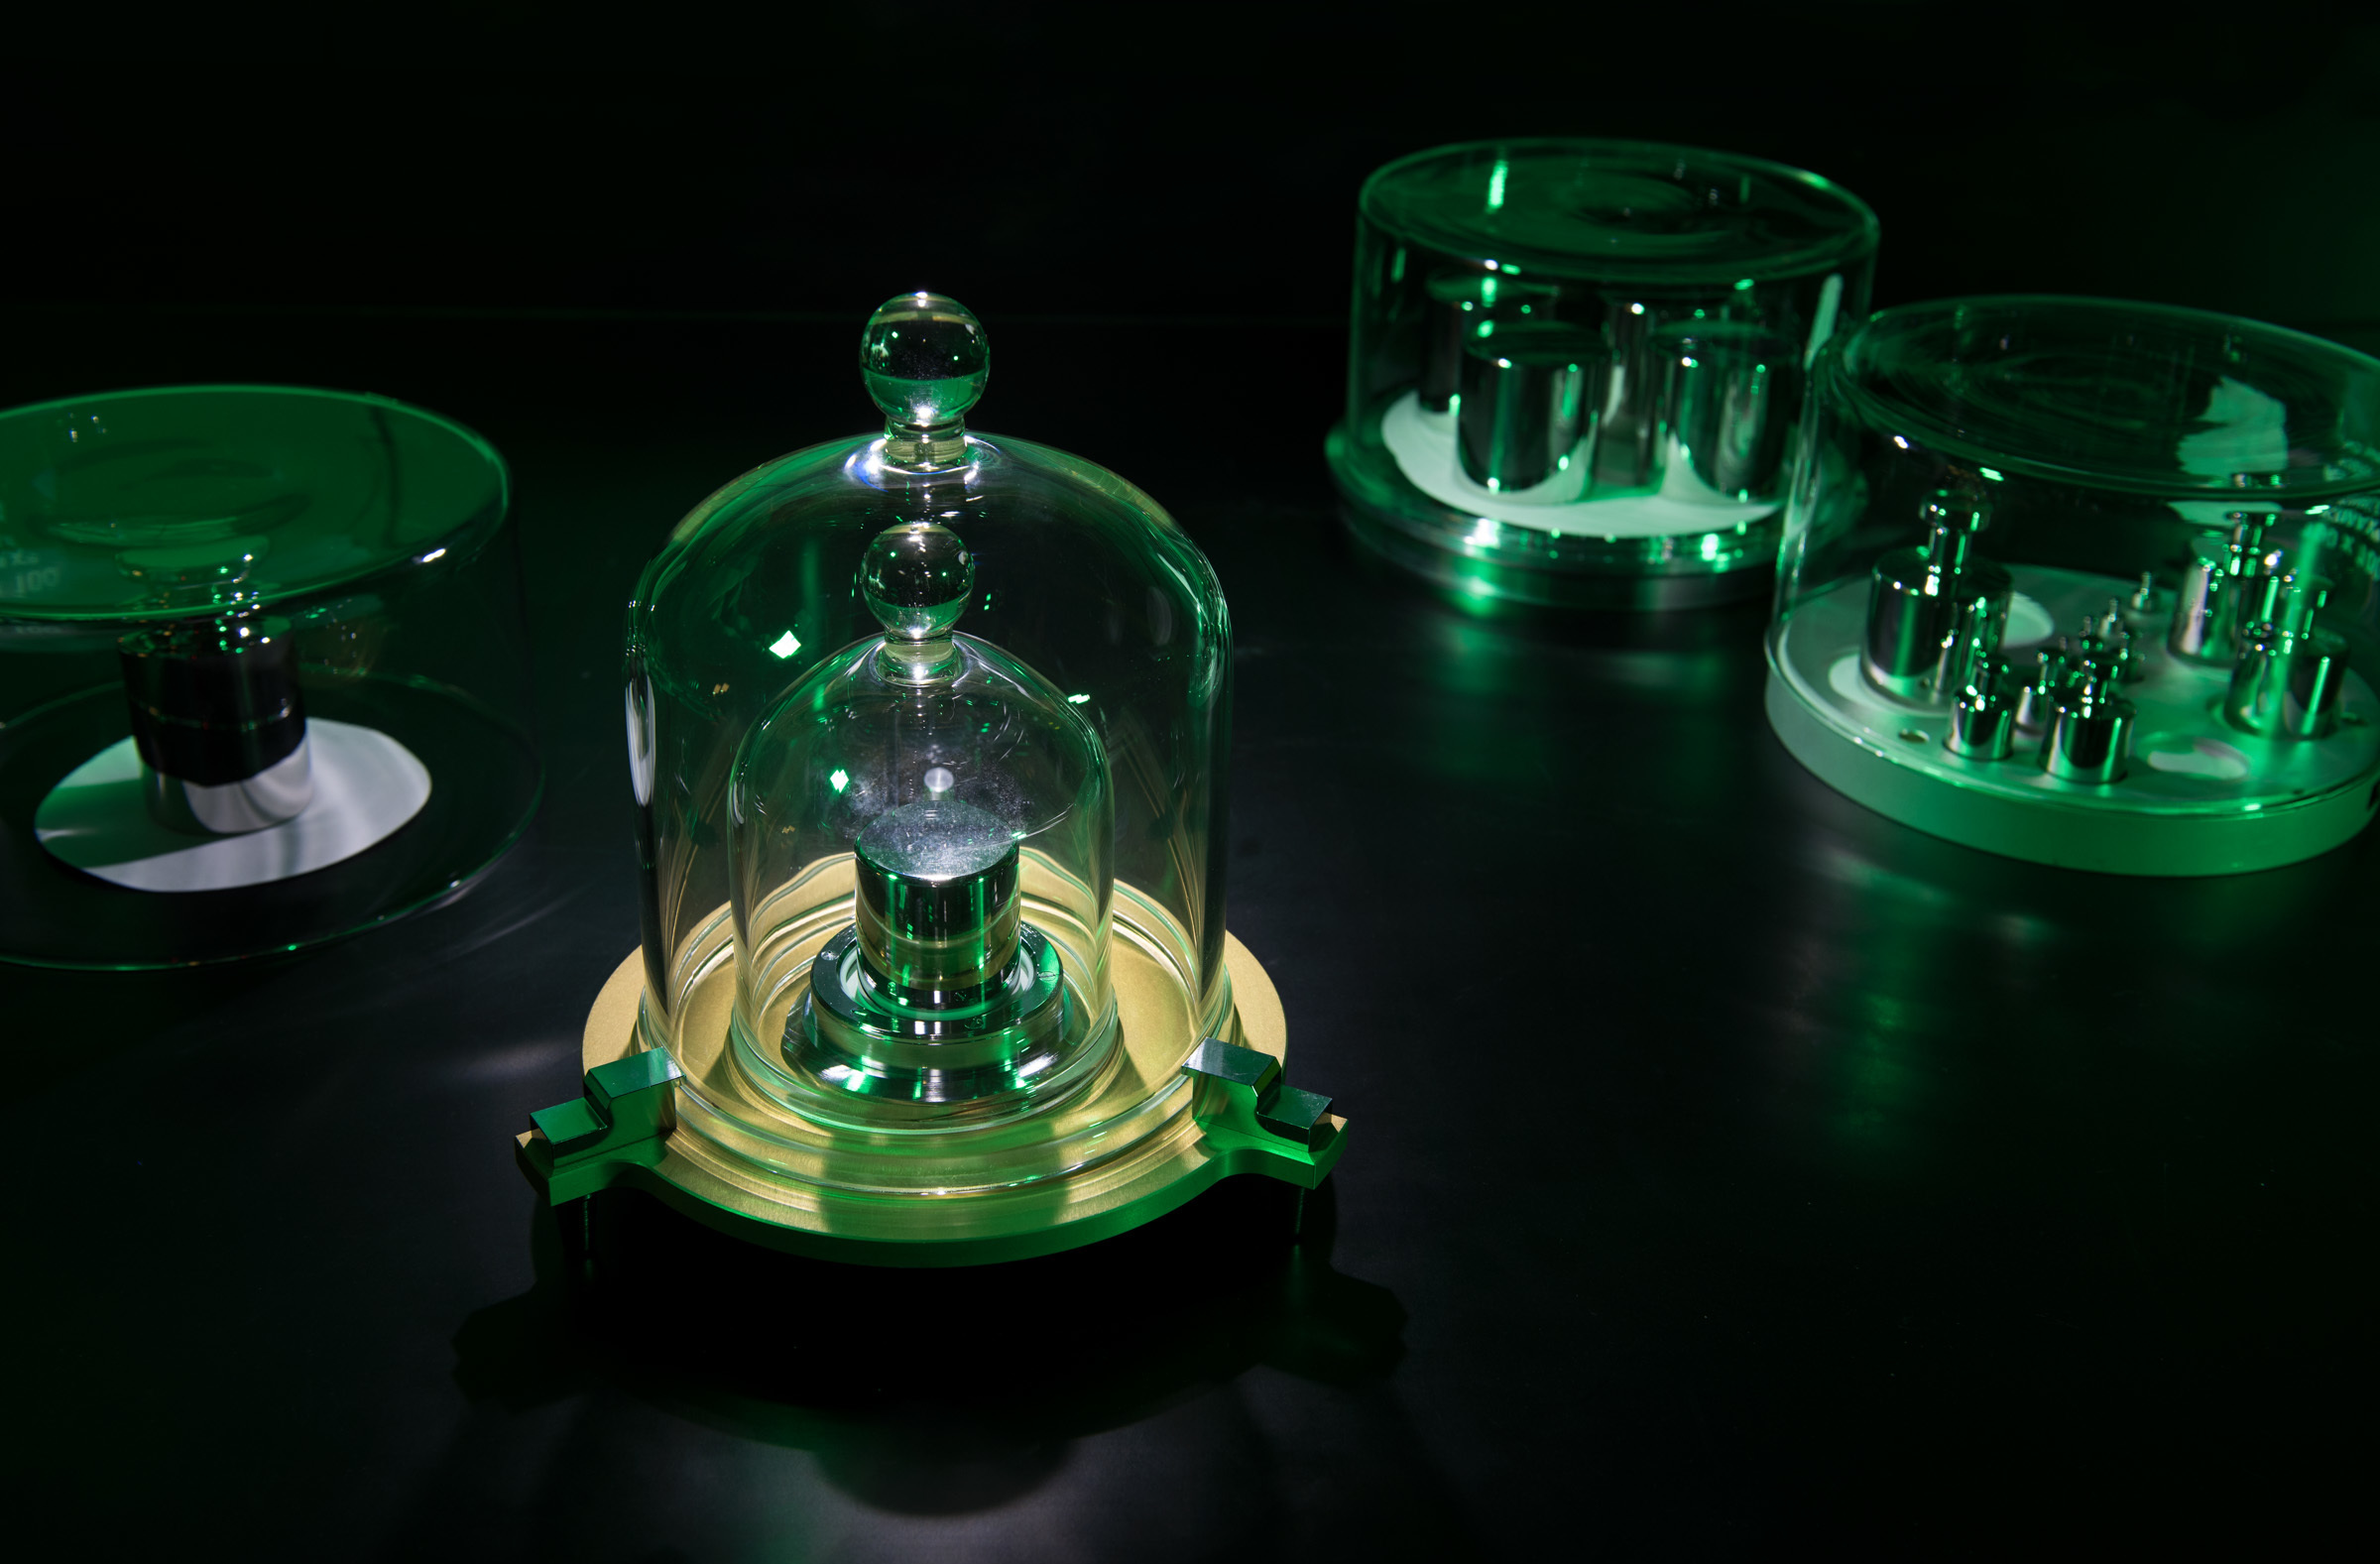 Say Au Revoir To That Hunk Of Metal In France That Has Defined The Kilogram